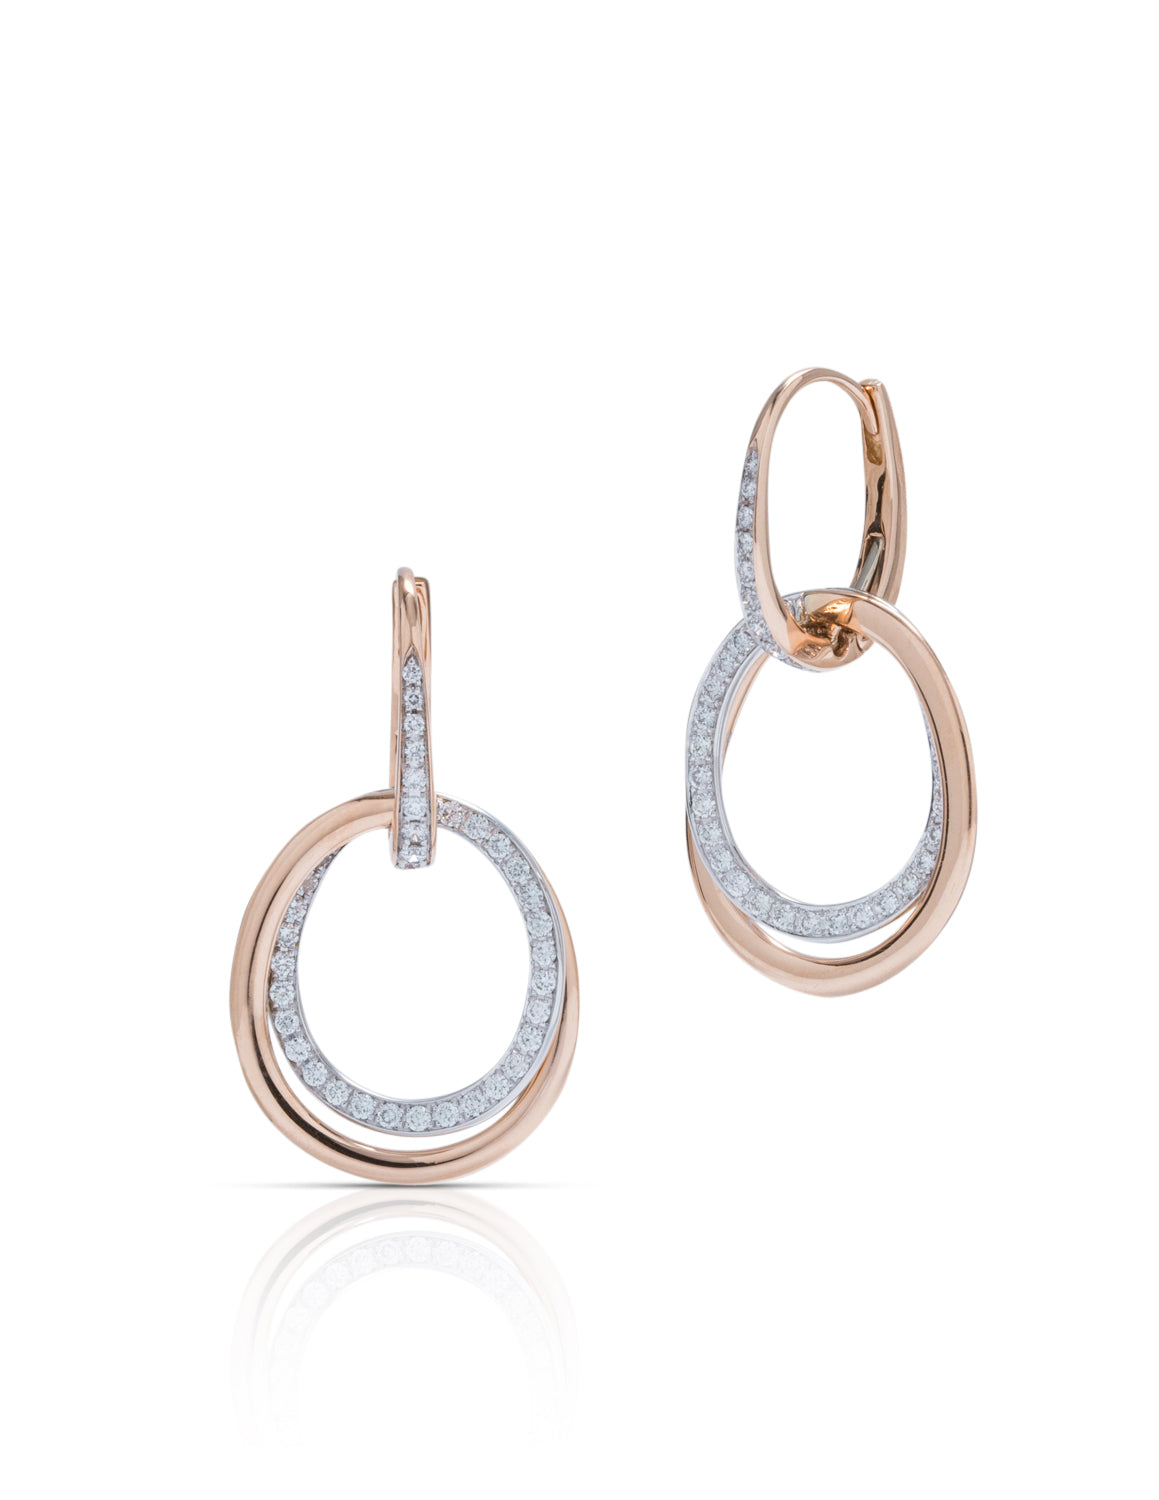 Two-Tone Diamond Circle Earrings - Charles Koll Jewellers